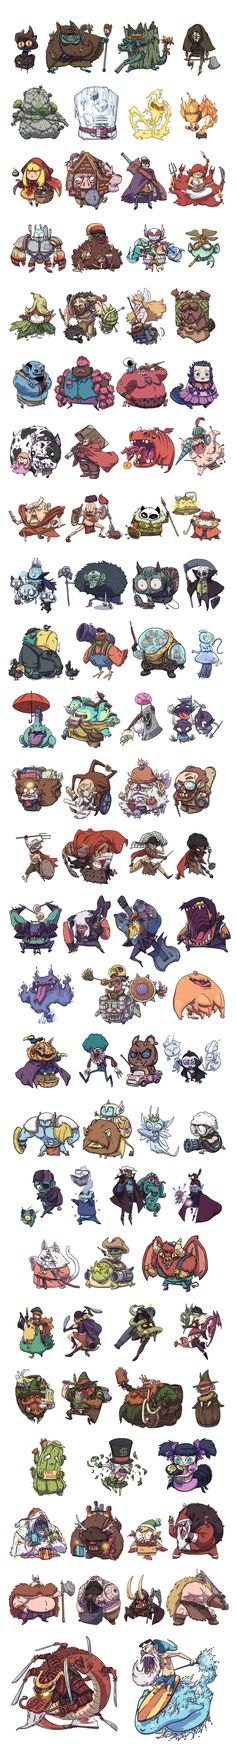 Character designs compilation by BattlePeach on DeviantArt ★ || CHARACTER DESIGN…